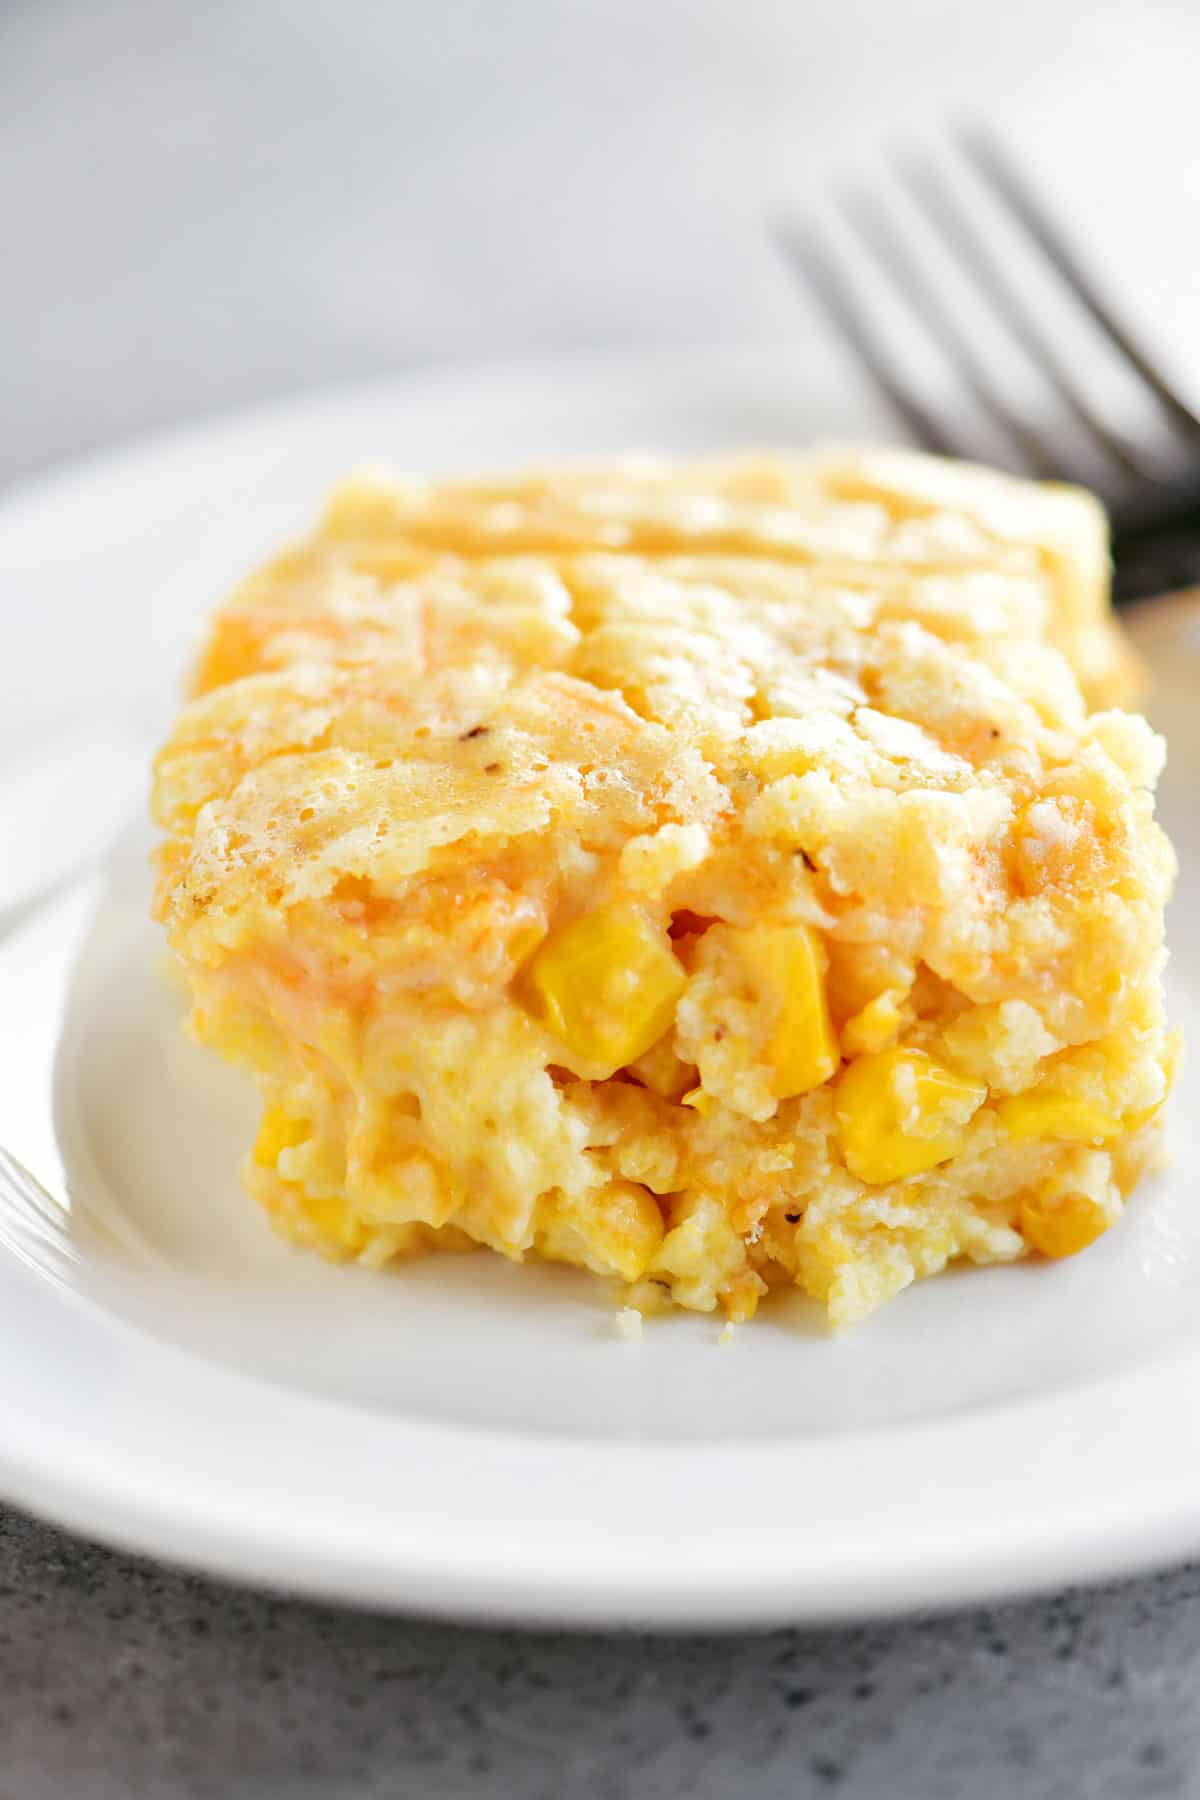 slice of corn casserole